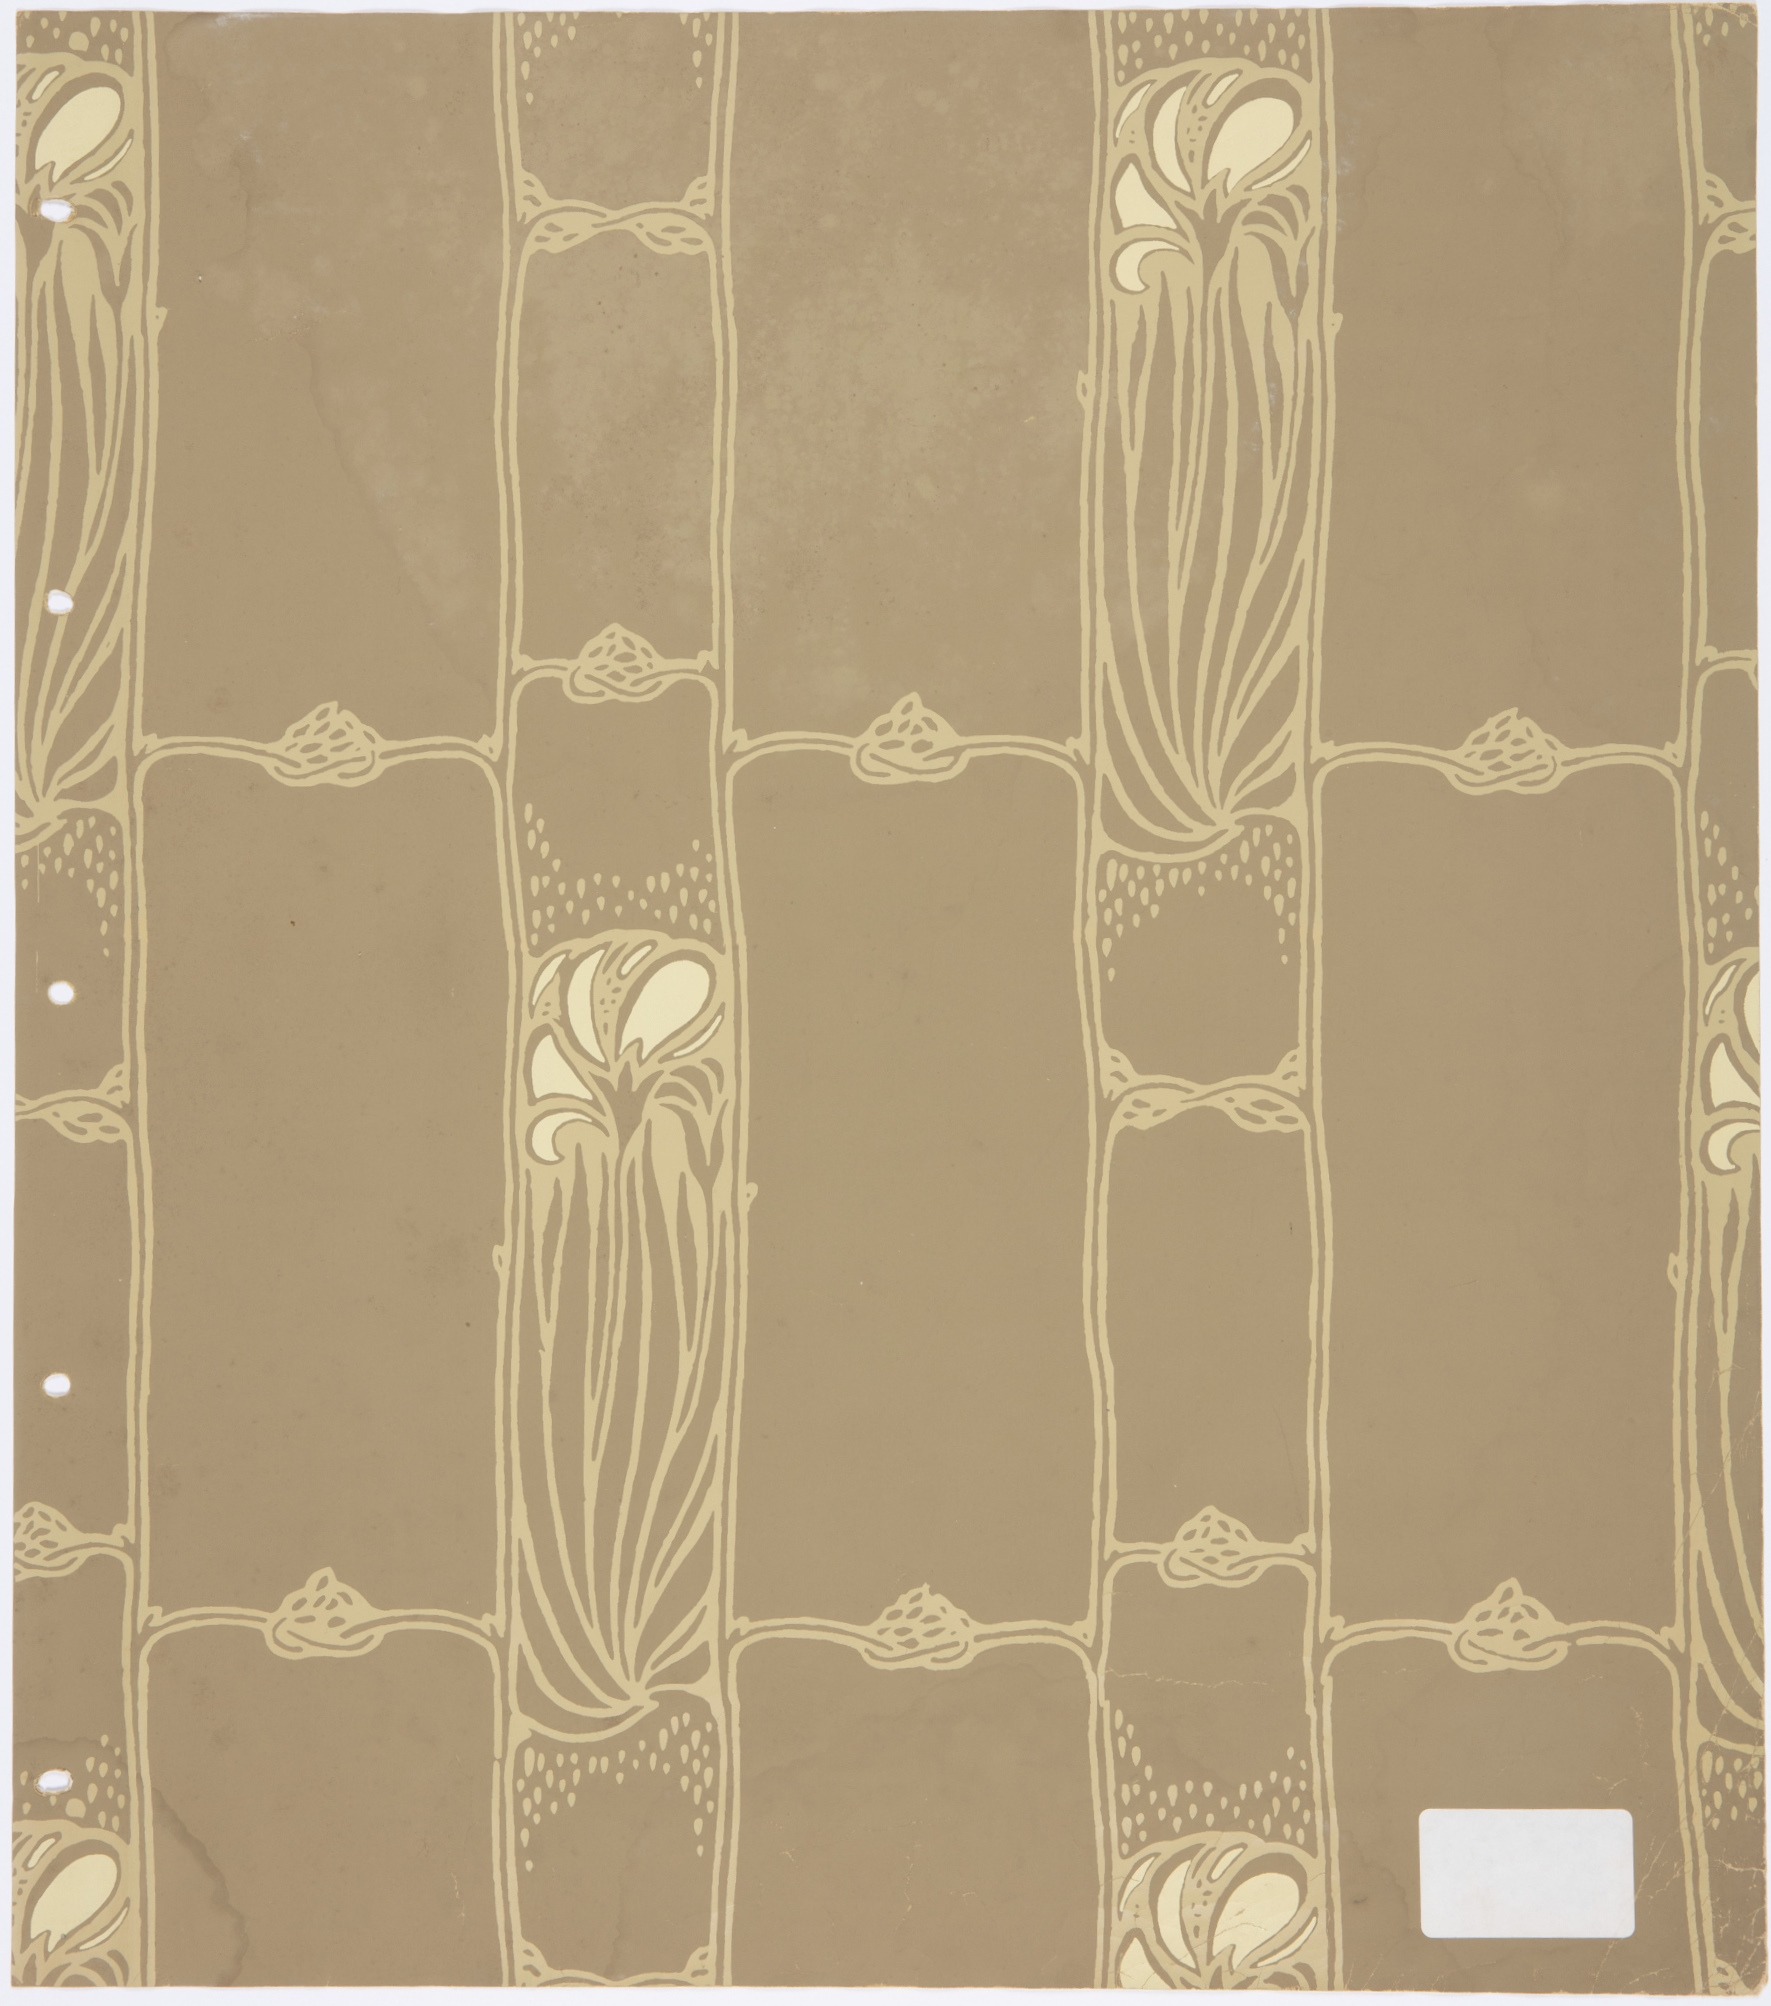 Art nouveau design wallpaper recreated from fragments found in Parliament House, Sydney